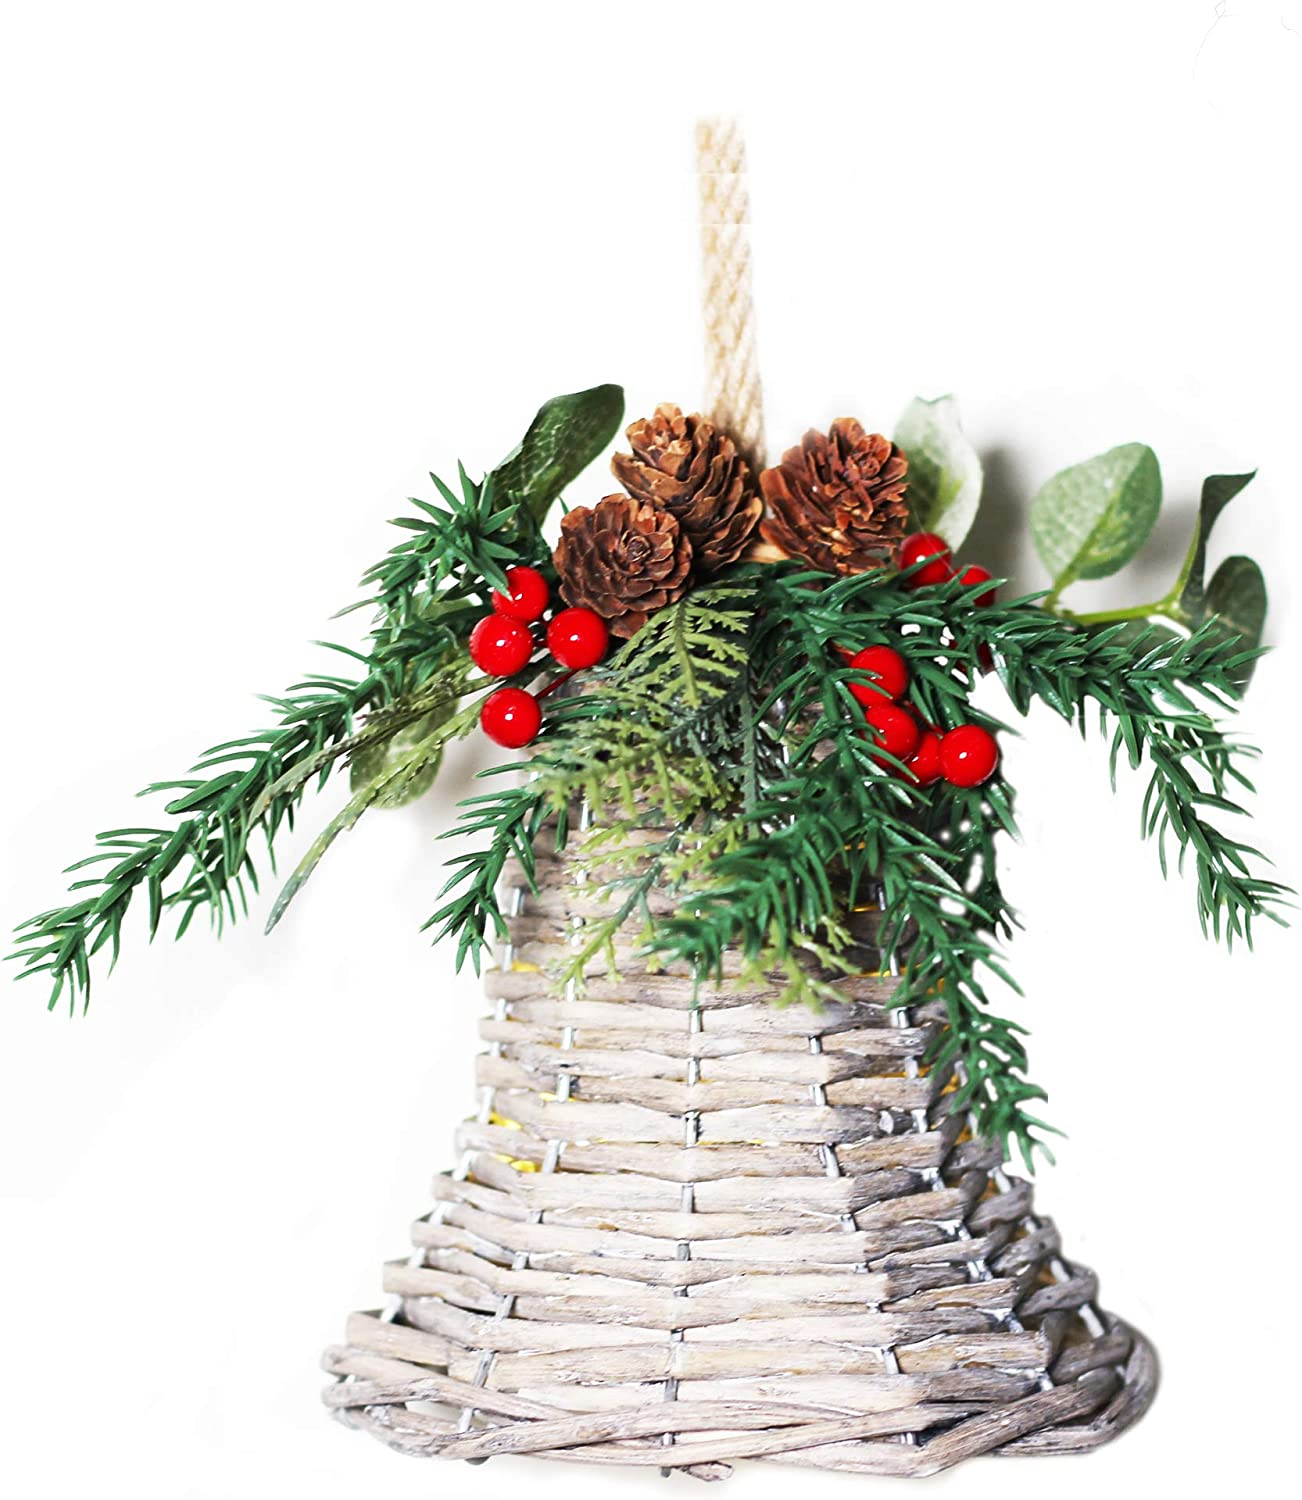 ALLEY CHARM Wicker Hanging Bell Ornament Hand Made for Farmhouse Christmas Décor, 6 in